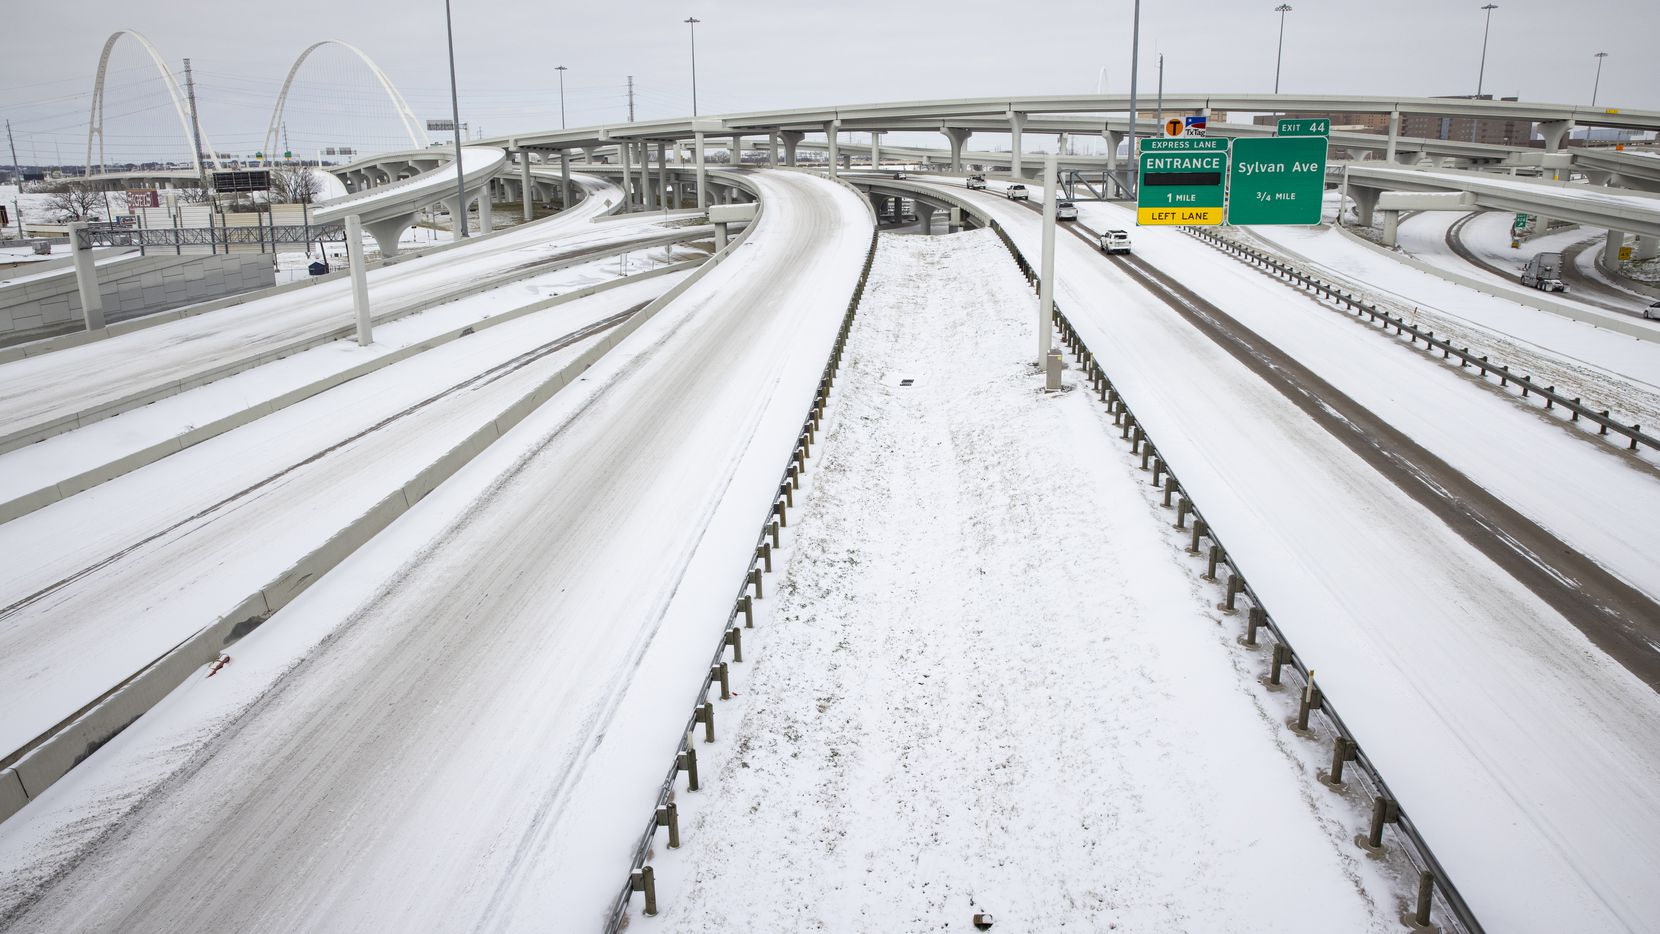 Snow covers I-30 and I-35E close to Downtown Dallas on Monday, Feb. 15, 2021. (Juan Figueroa/ The Dallas Morning News)